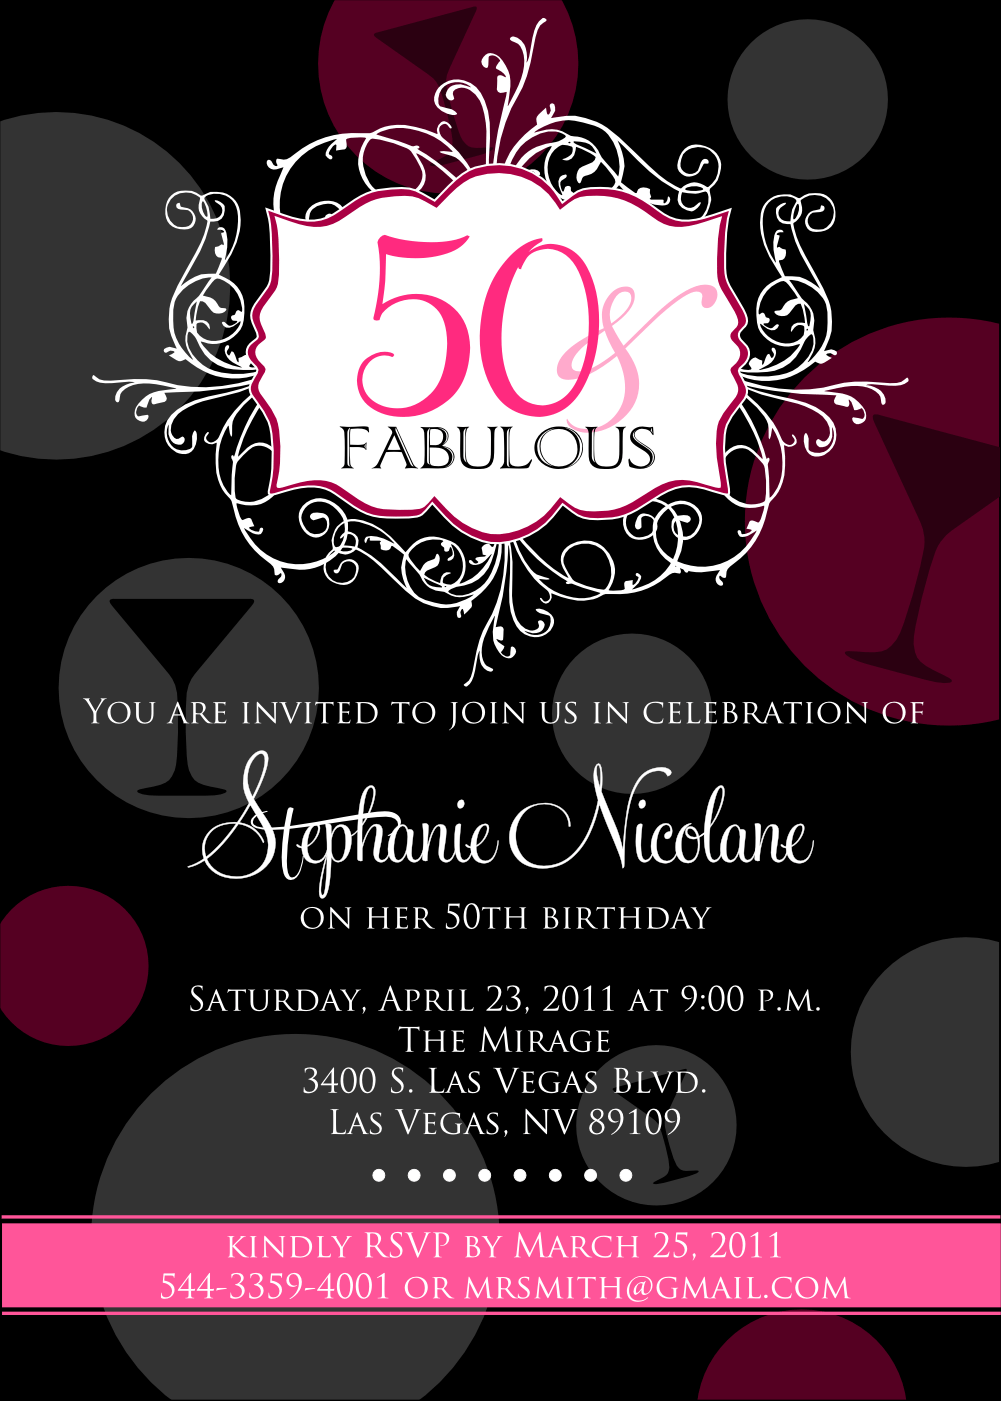 Invitation Samples For 50th Birthday Party